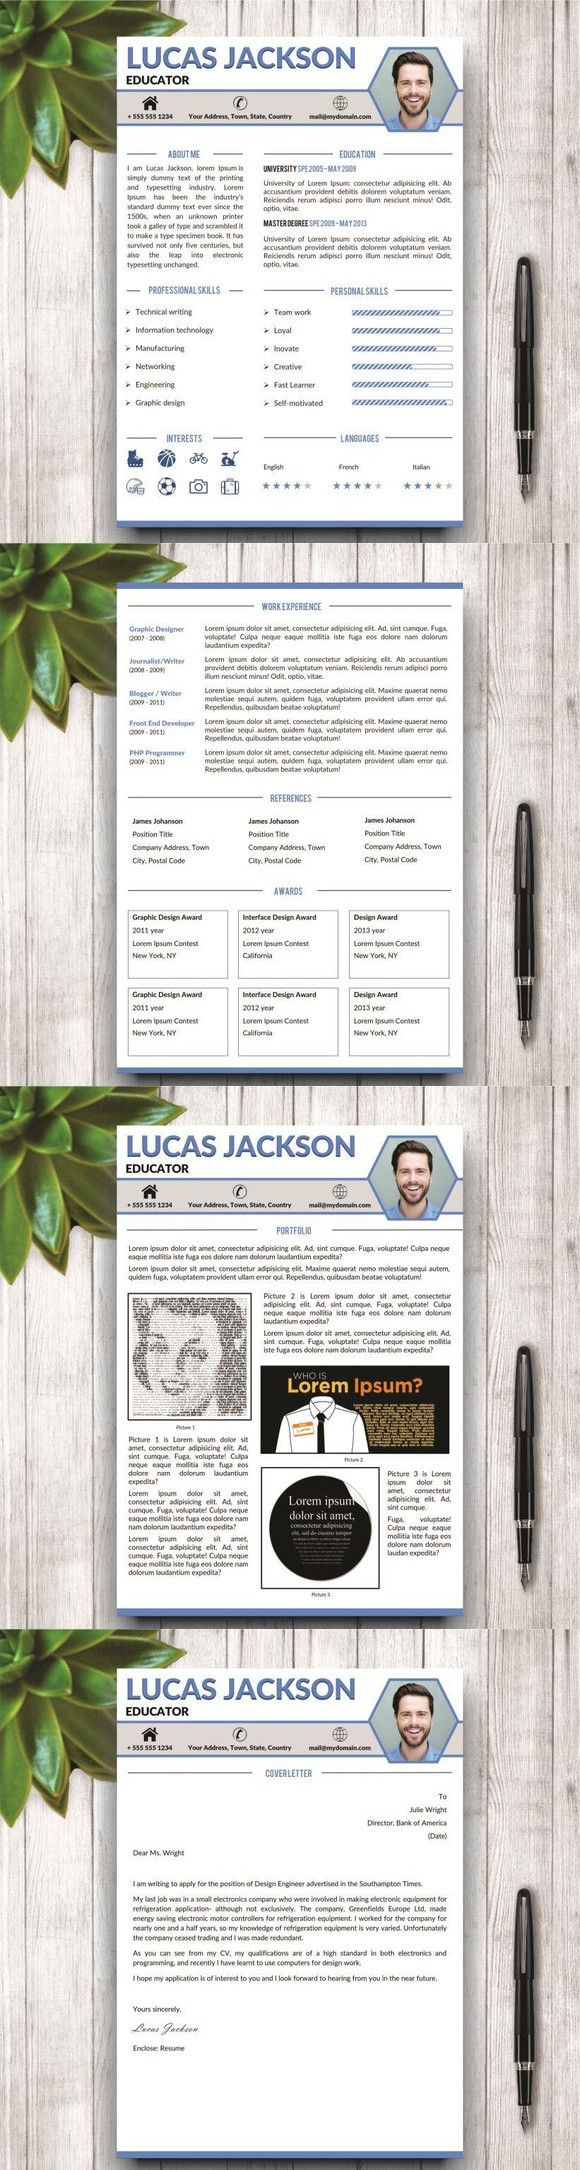 stylish resume template for ms word - Stylish Resume Templates Word